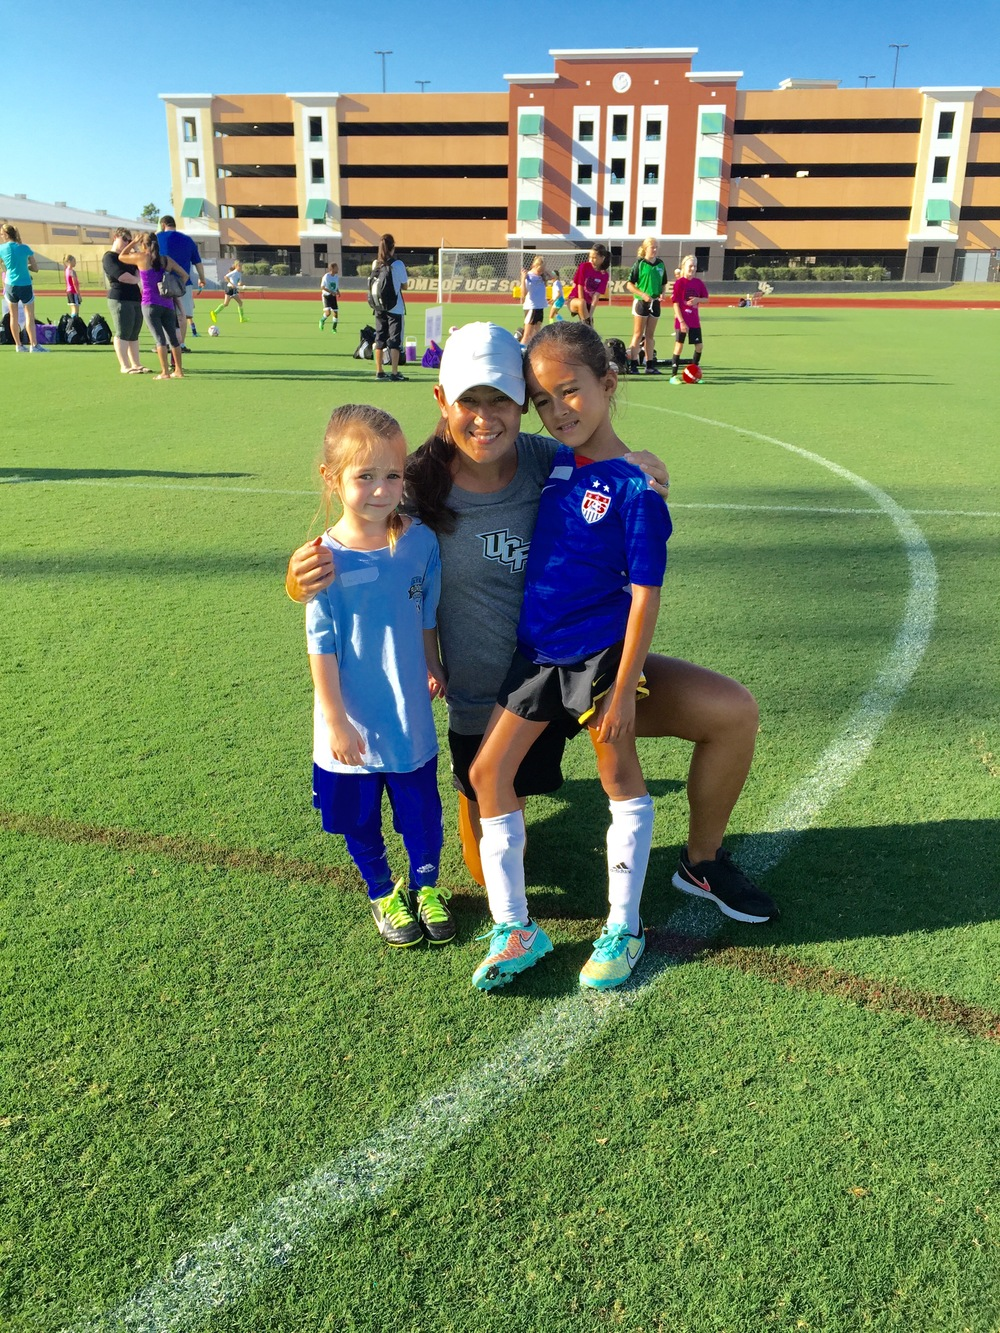 Tiffany with her two daughters (Layla , 7 and Evie, 5) at her recent soccer camp for girls at the University of Central Florida.